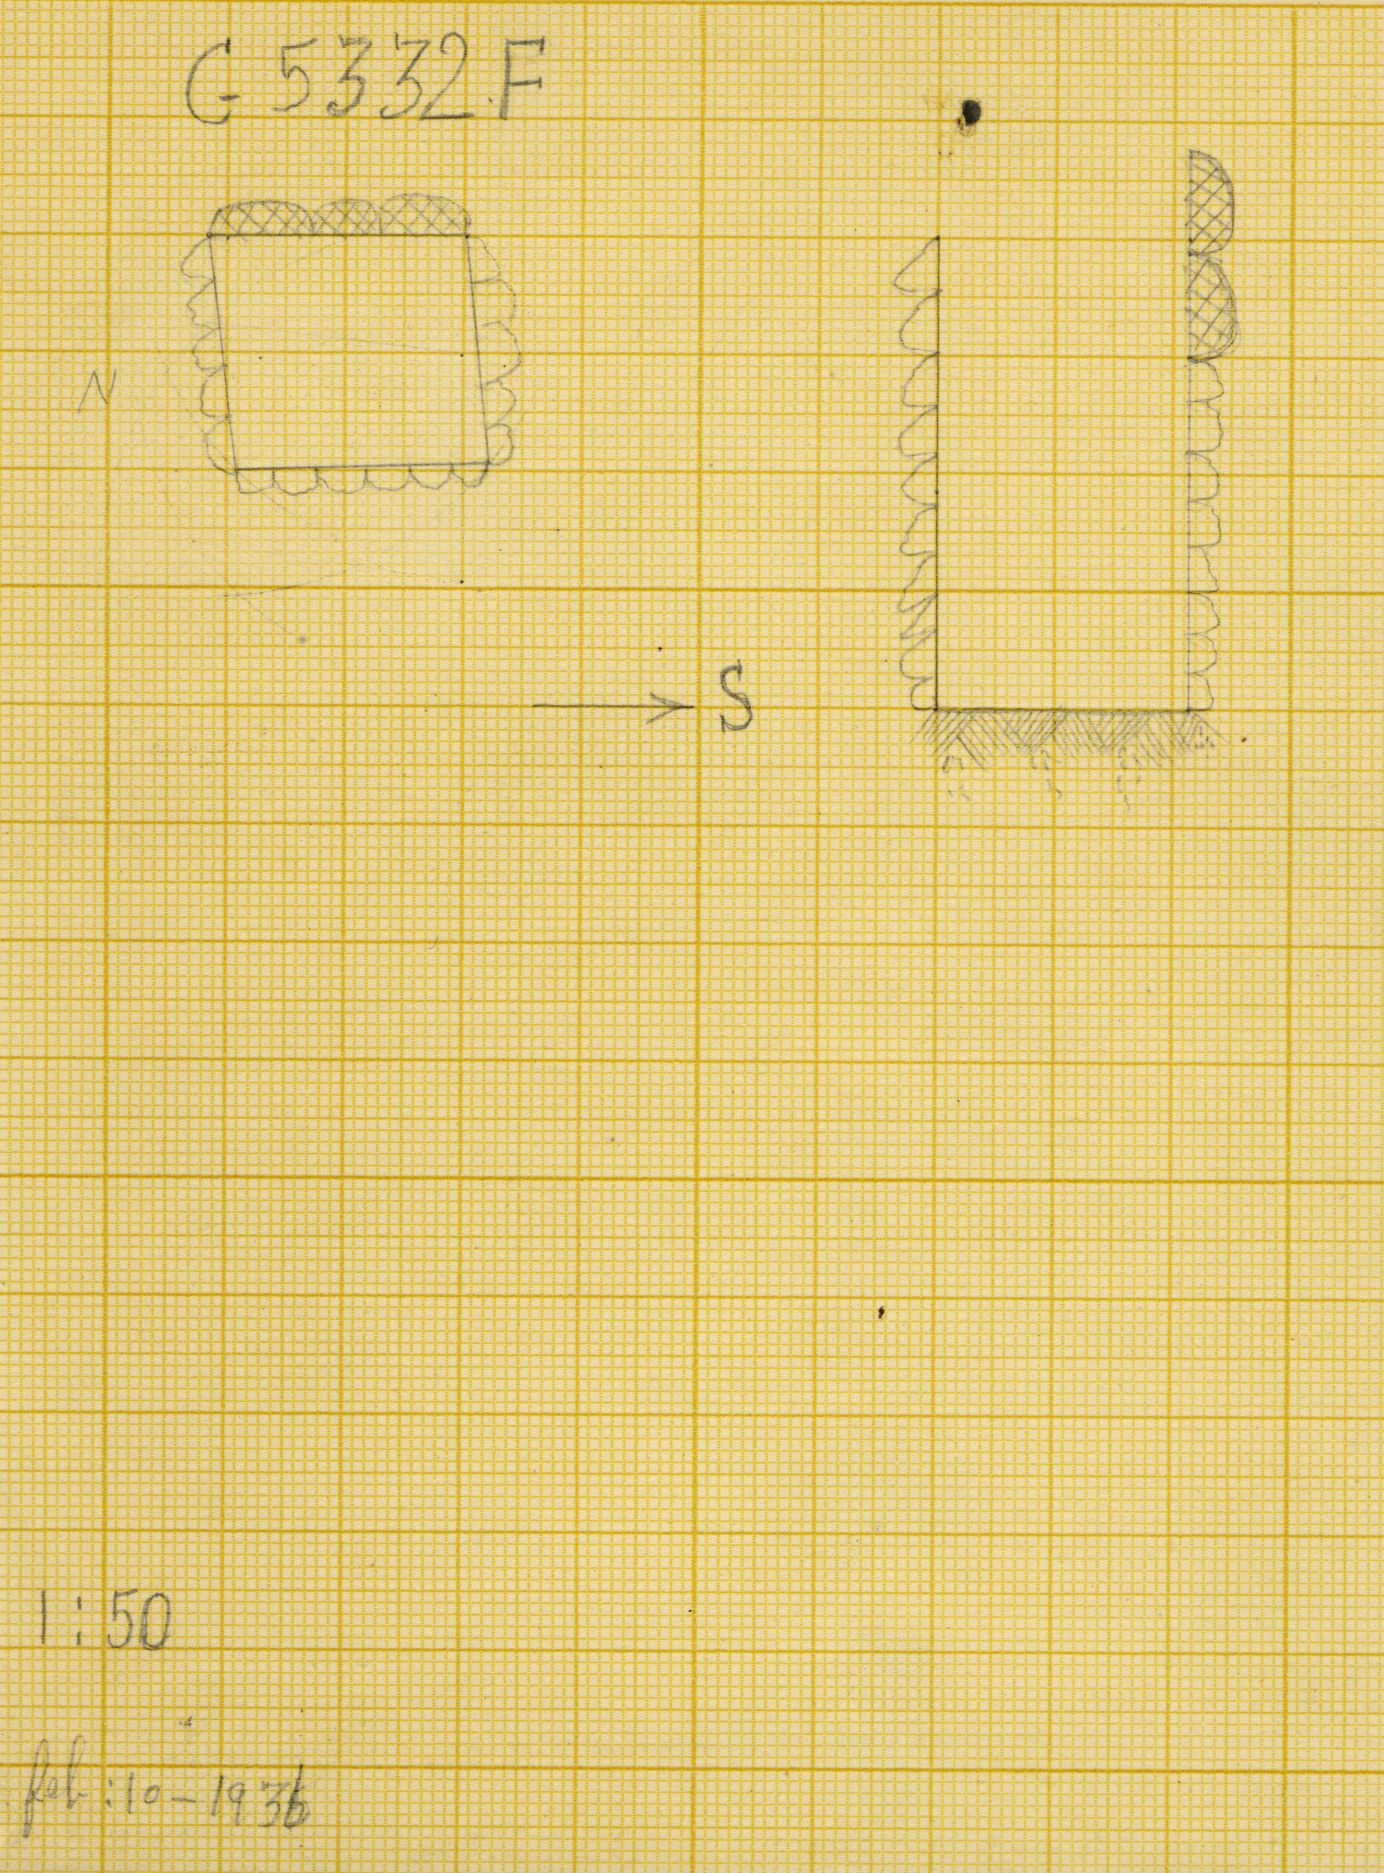 Maps and plans: G 5332, Shaft F (S 800)